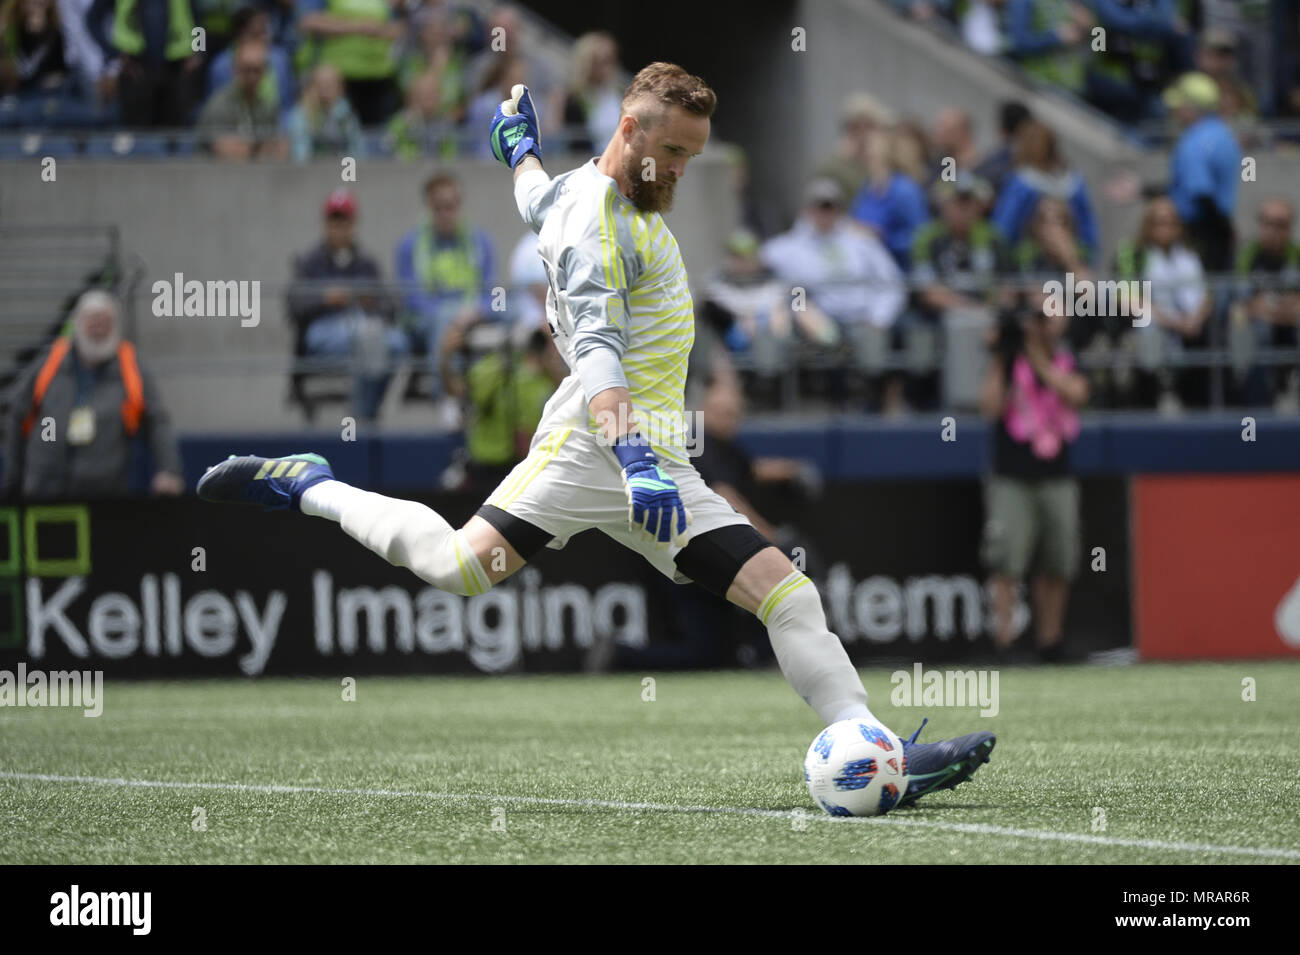 Seattle, Washington, USA. 26th May, 2018. MLS Soccer 2018: Seattle goalie STEFAN FREI in action as Real Salt Lake visits the Seattle Sounders in a MLS match at Century Link Field in Seattle, WA. RSL won the match 1-0. Credit: Jeff Halstead/ZUMA Wire/Alamy Live News - Stock Image